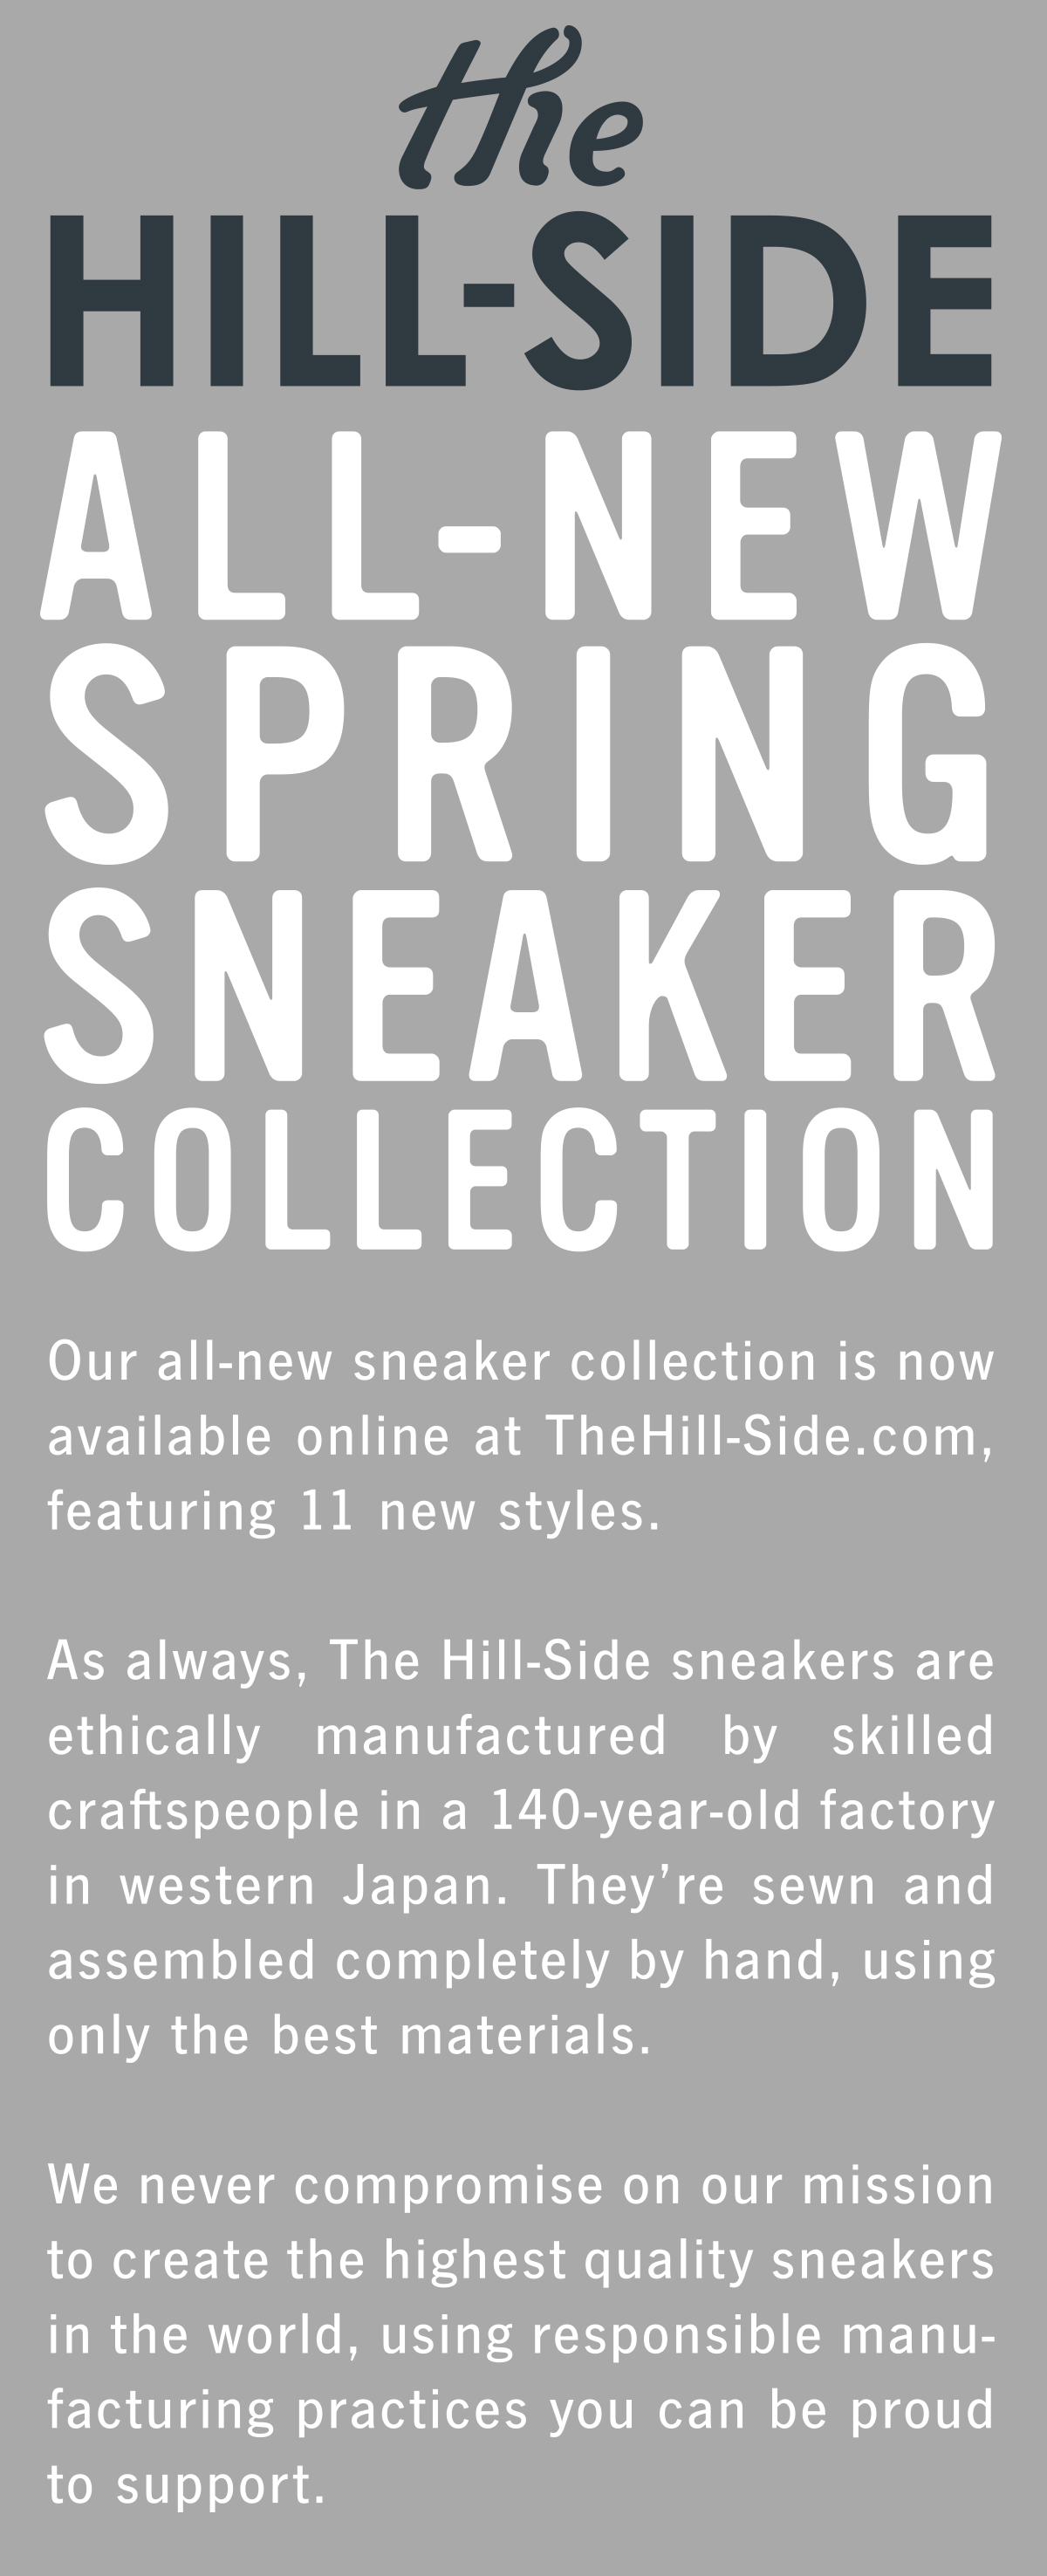 All-New Spring Sneaker Collection